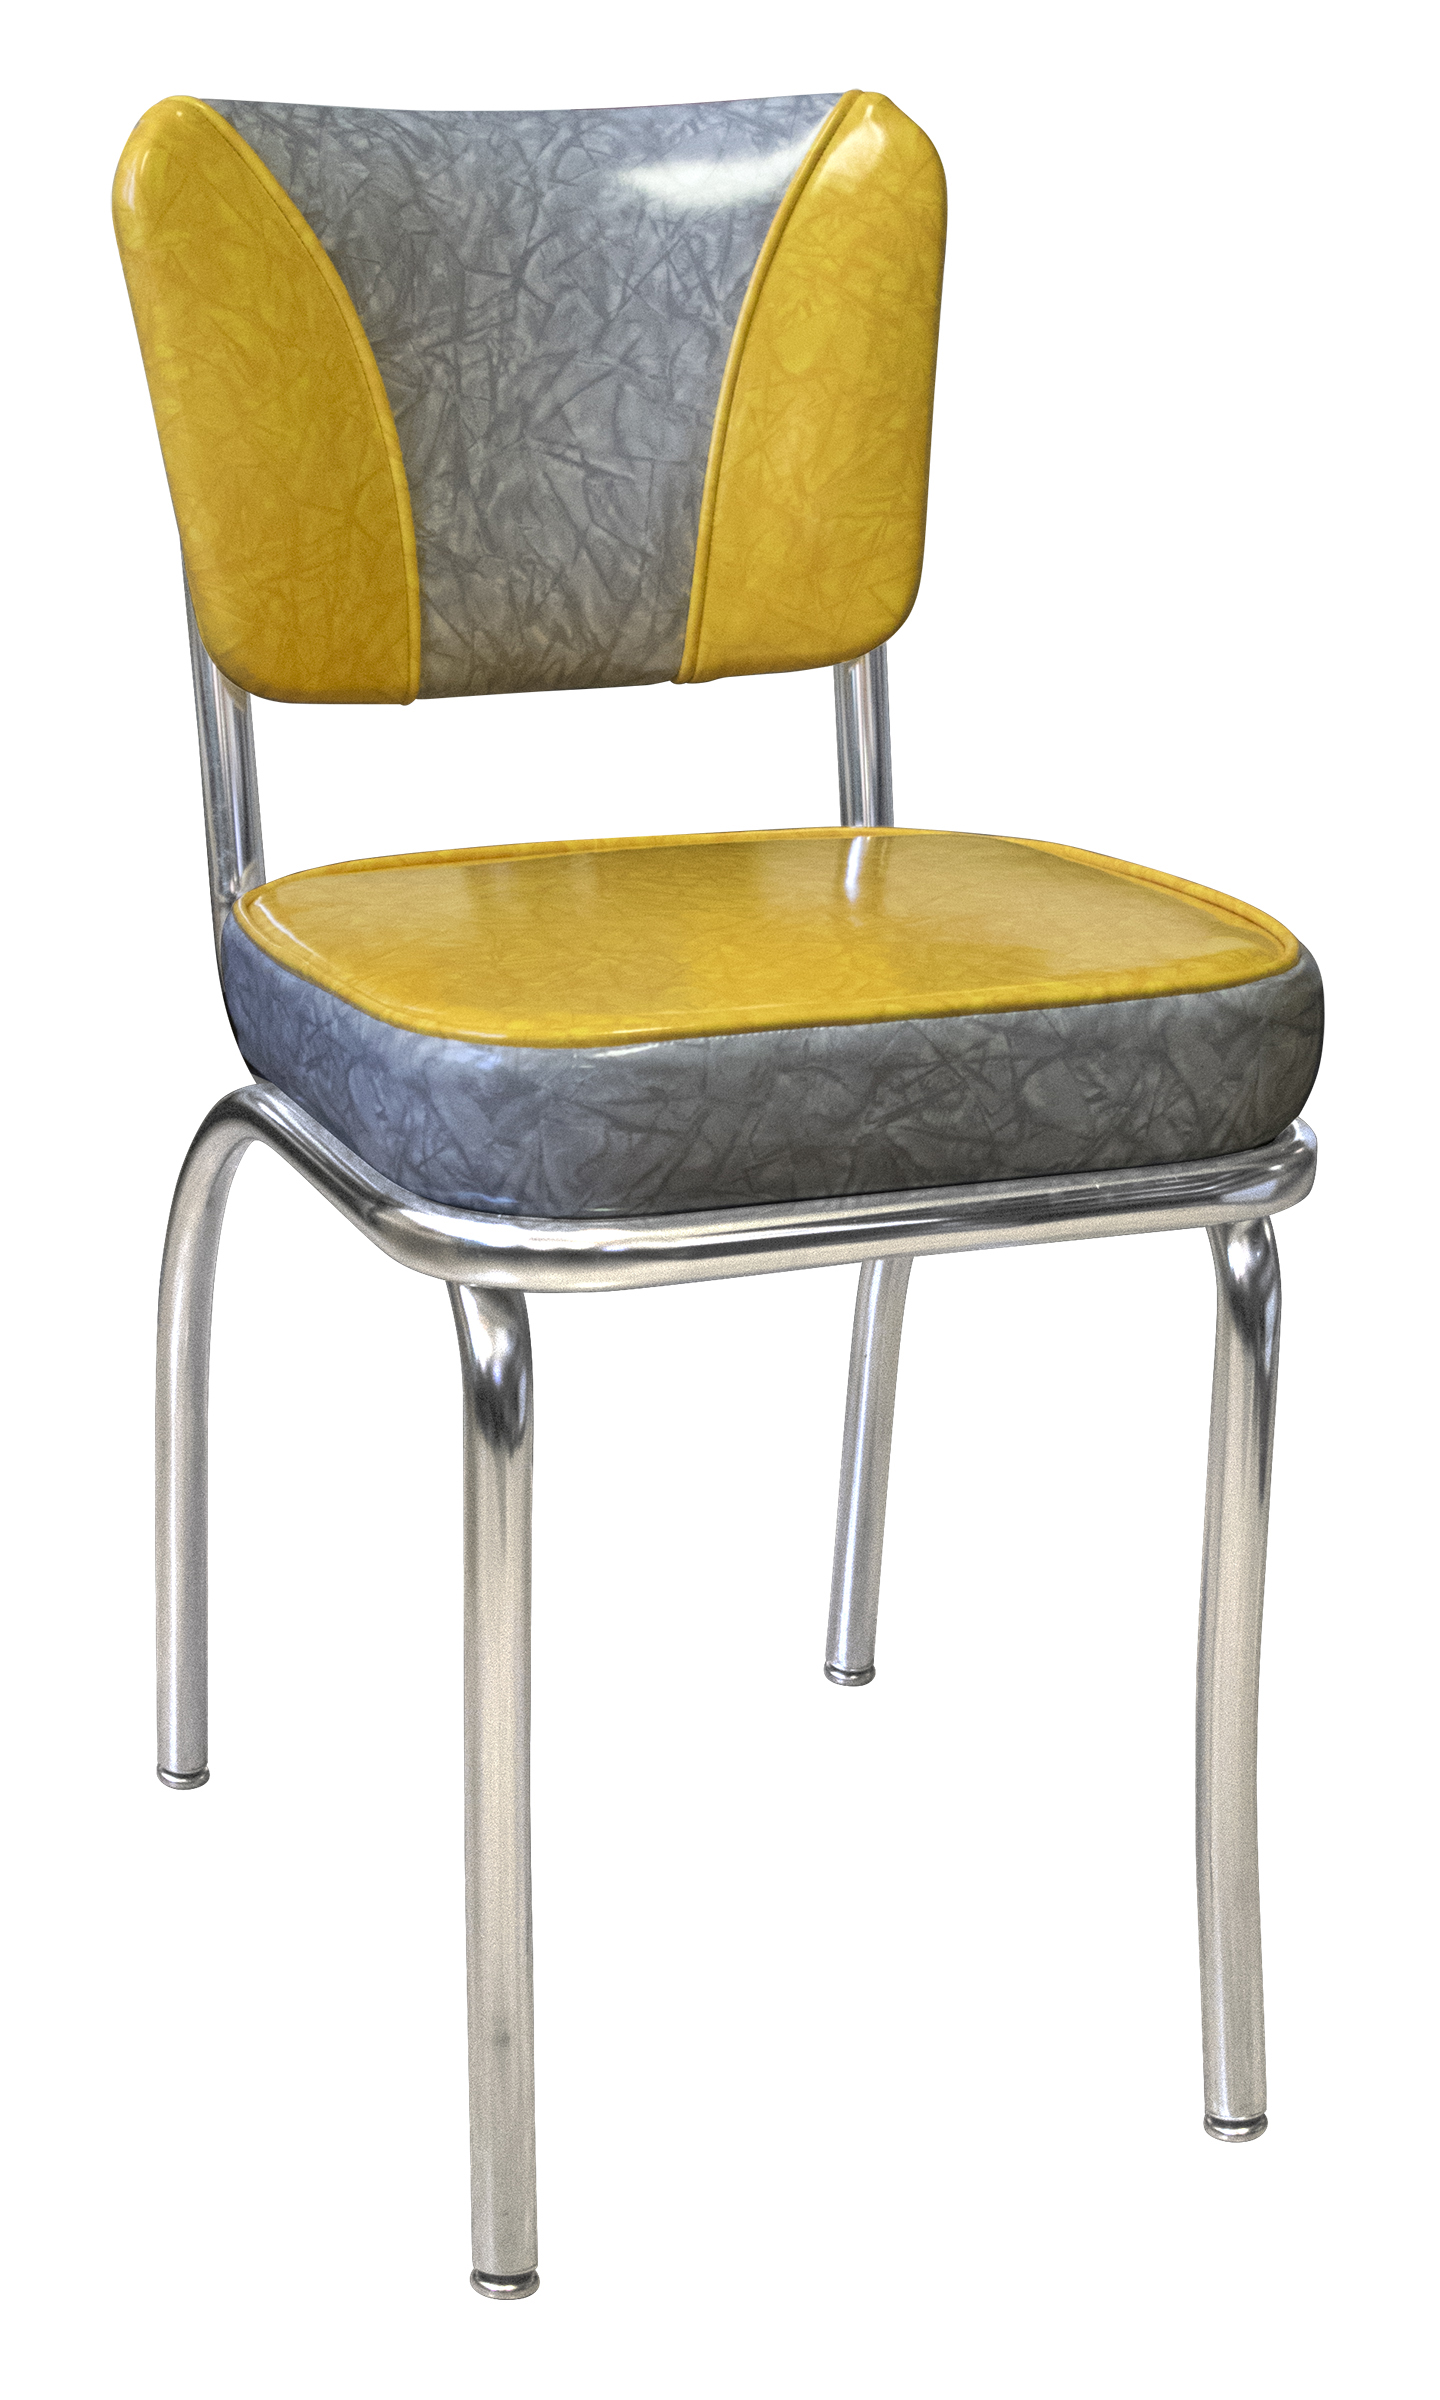 Exceptionnel ... 921 ELSH Retro Diner Chair Cracked Ice